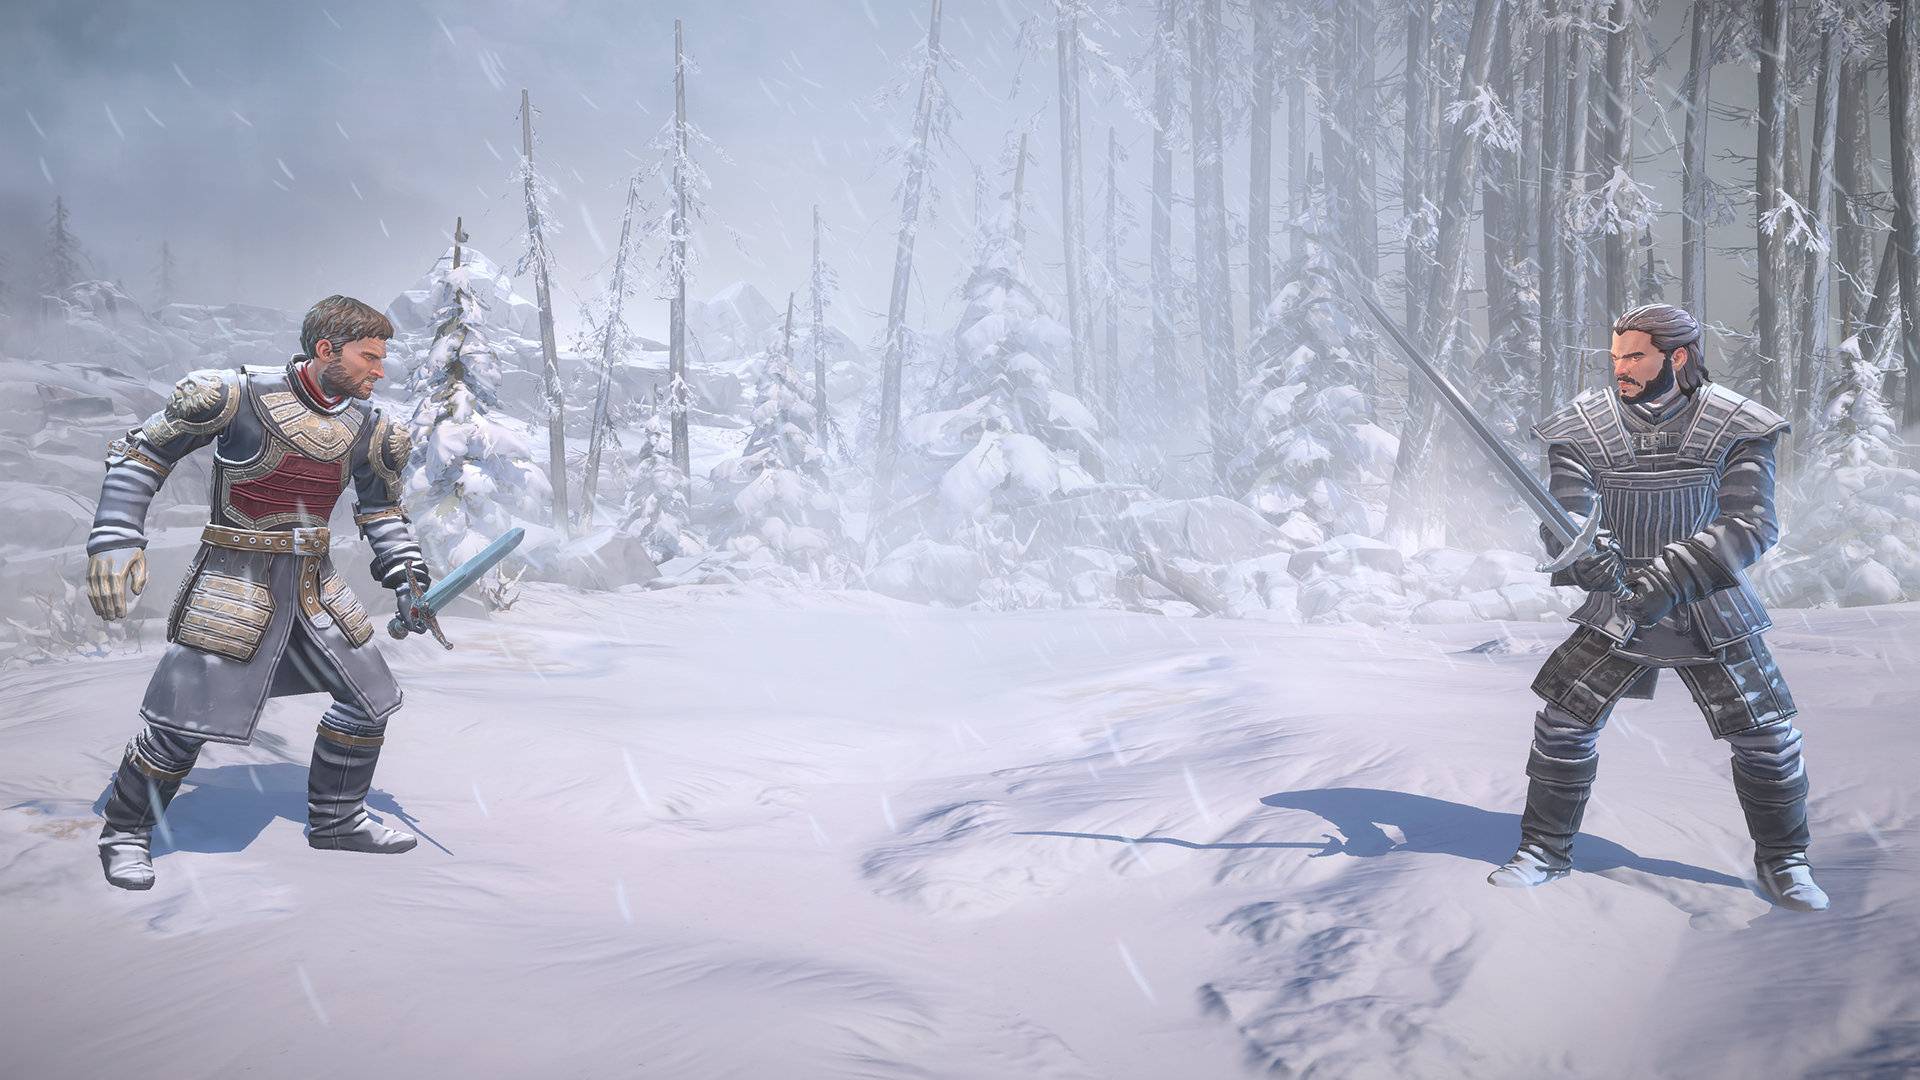 Game of Thrones Beyond the Wall for iOS and Android